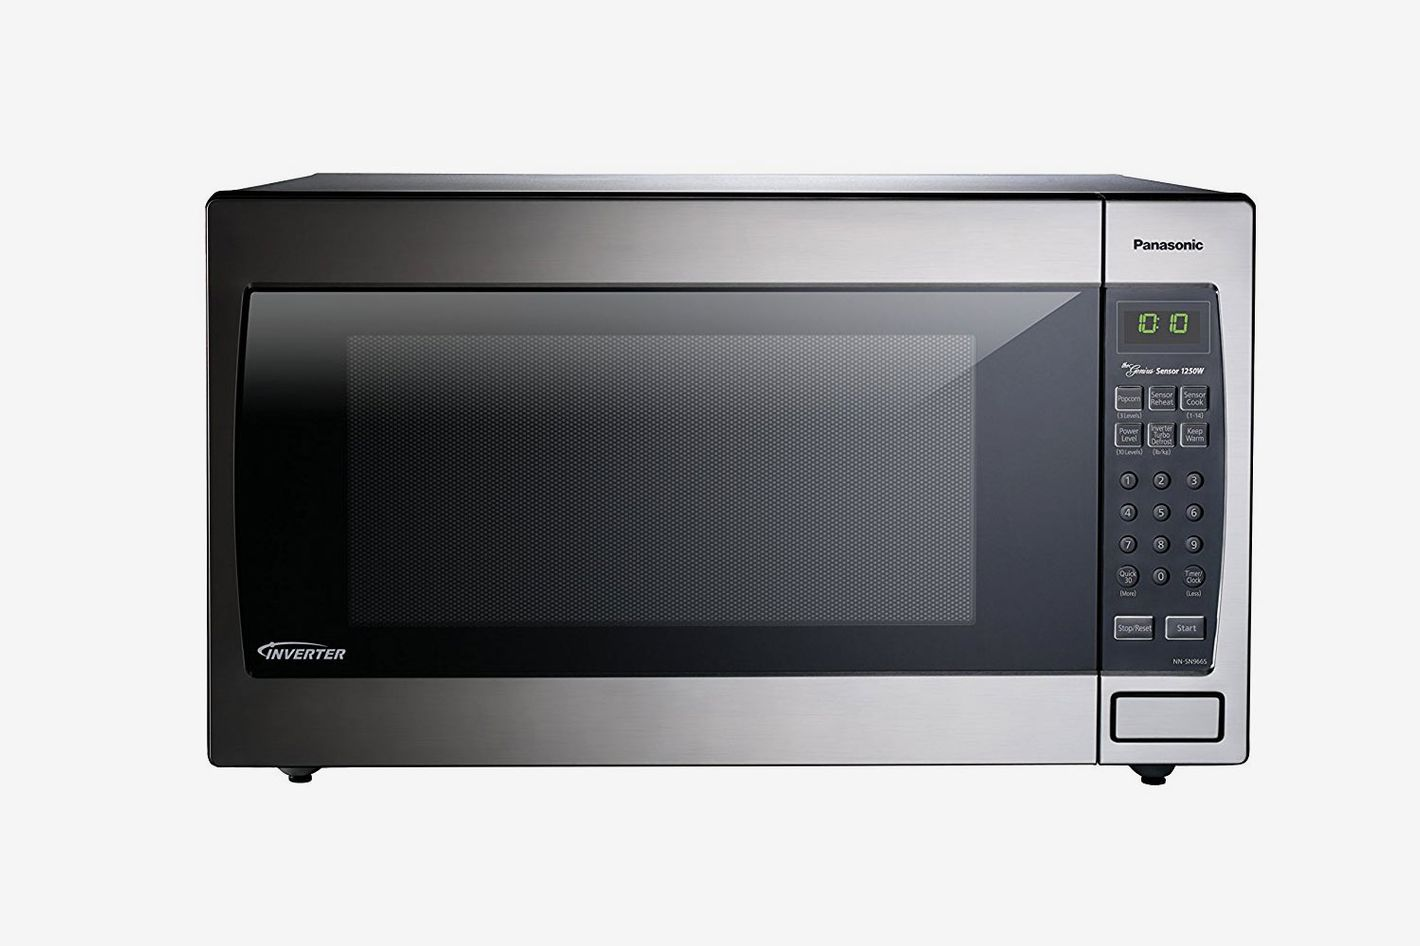 Panasonic NN-SN966S Microwave Oven- strategist best smart kitchen appliances